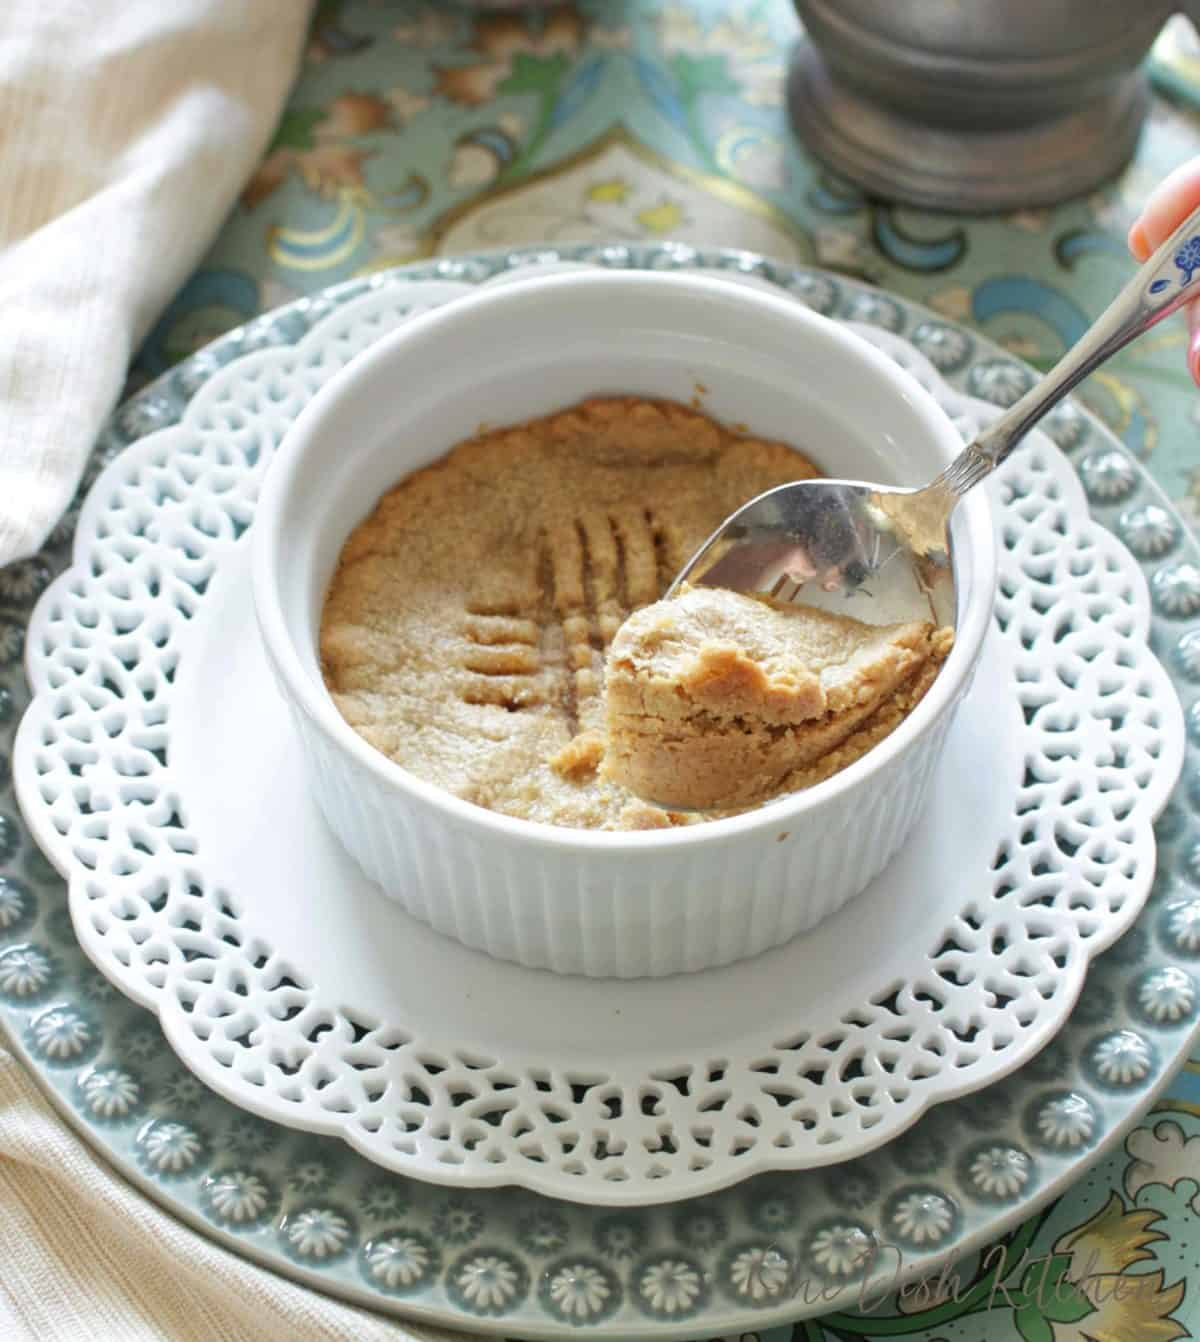 scooping out a spoonful of a cookie from a ramekin.